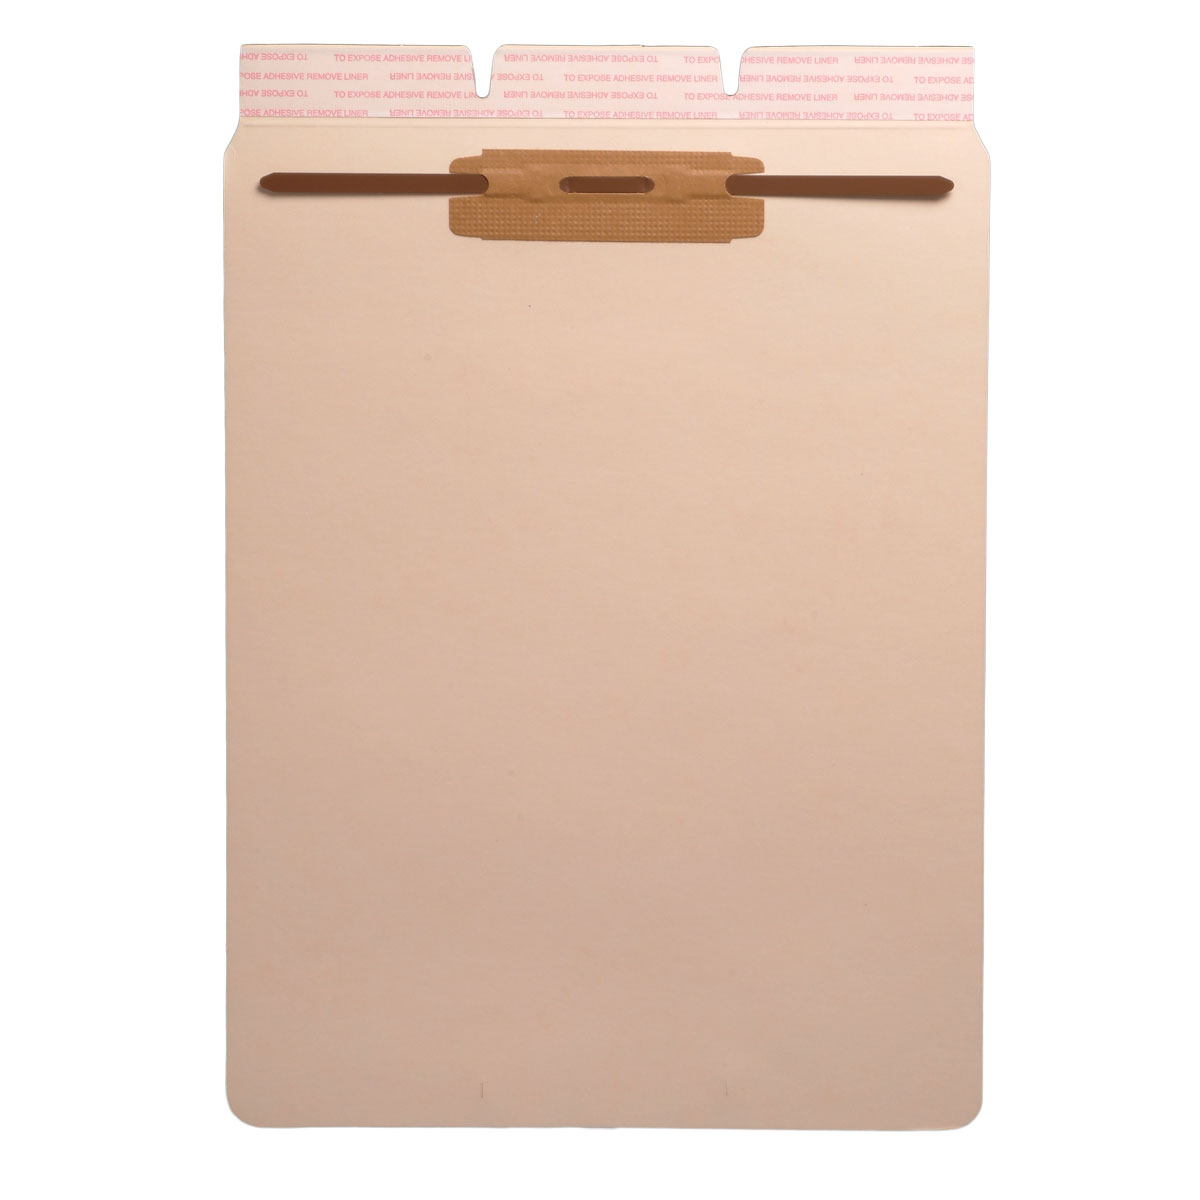 S-9092 - Self Adhesive Divider, Standard End Flap, 2